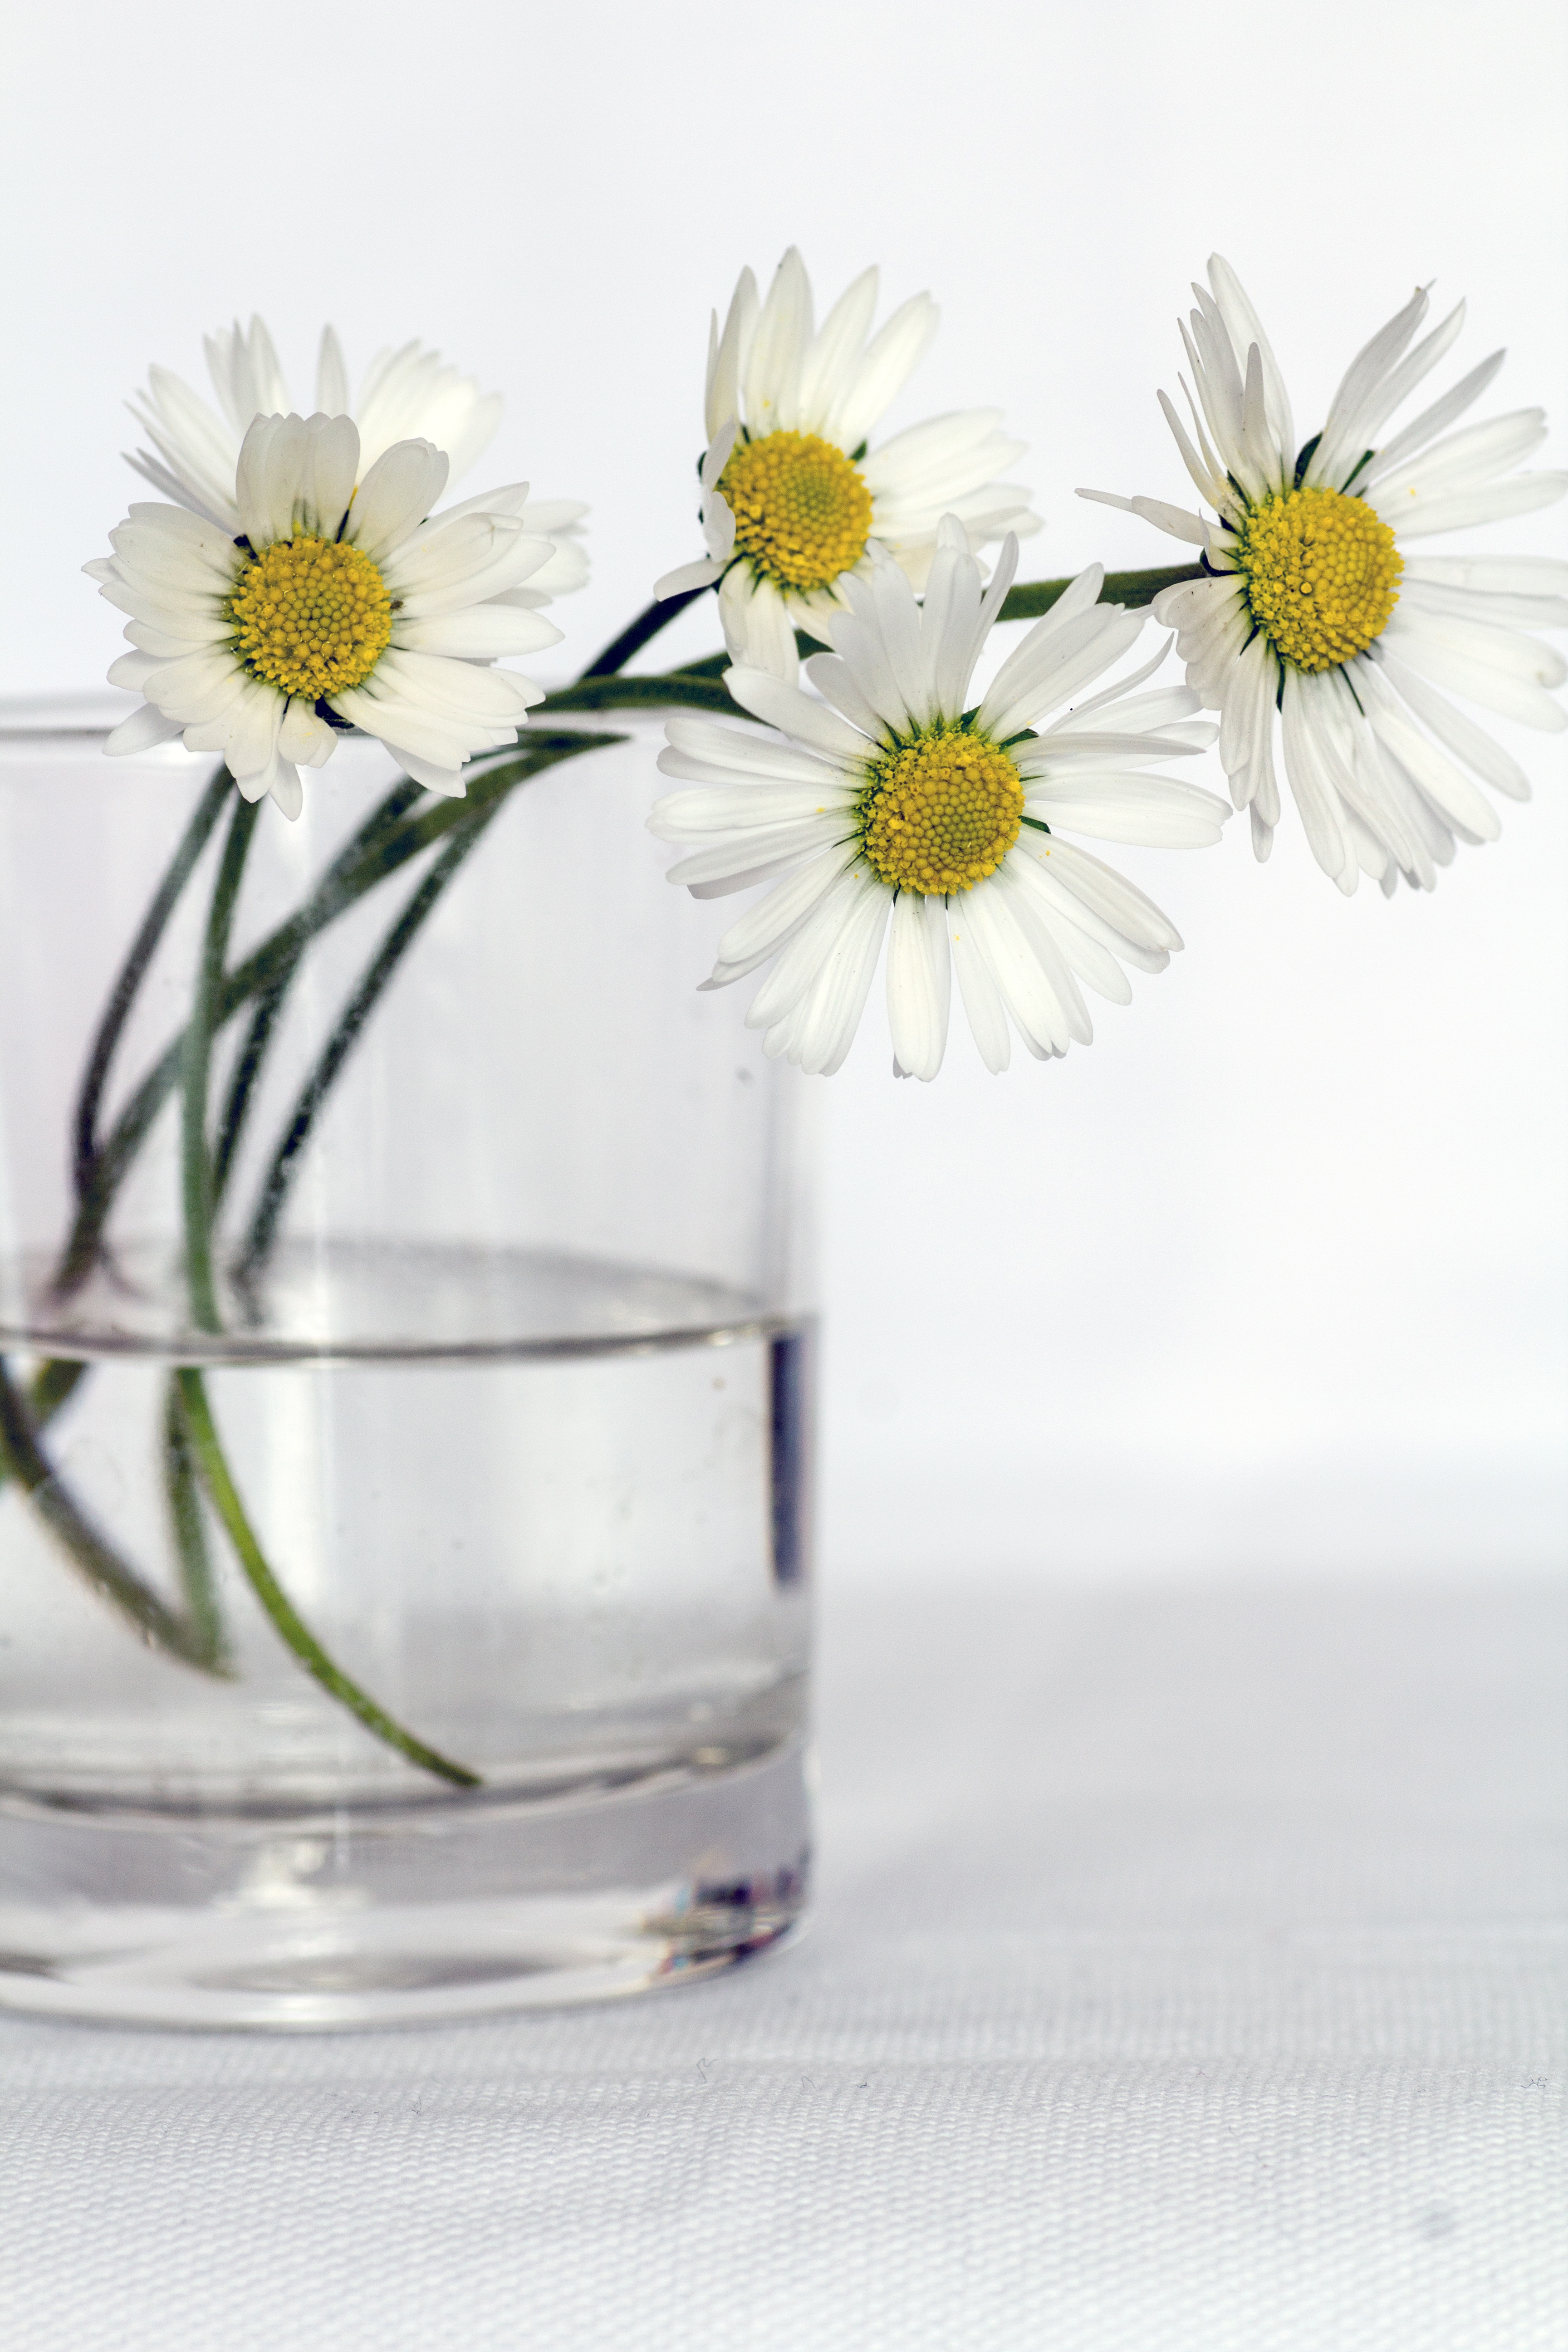 Free stock photo of daisies flowers still life